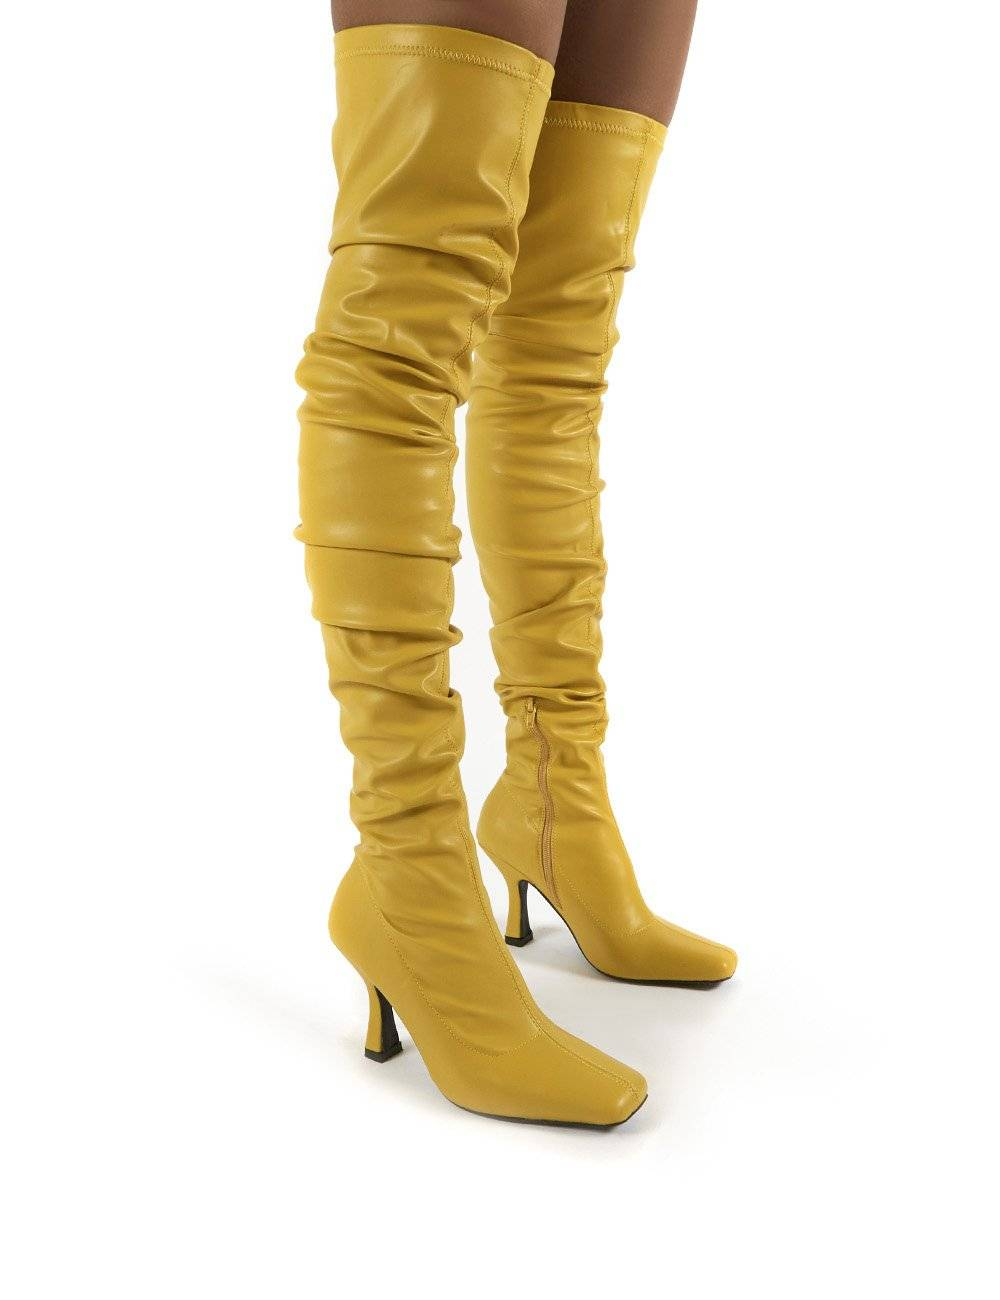 Public Desire US Outlaw Mustard Ruched Over The Knee Heeled Boots - US 5